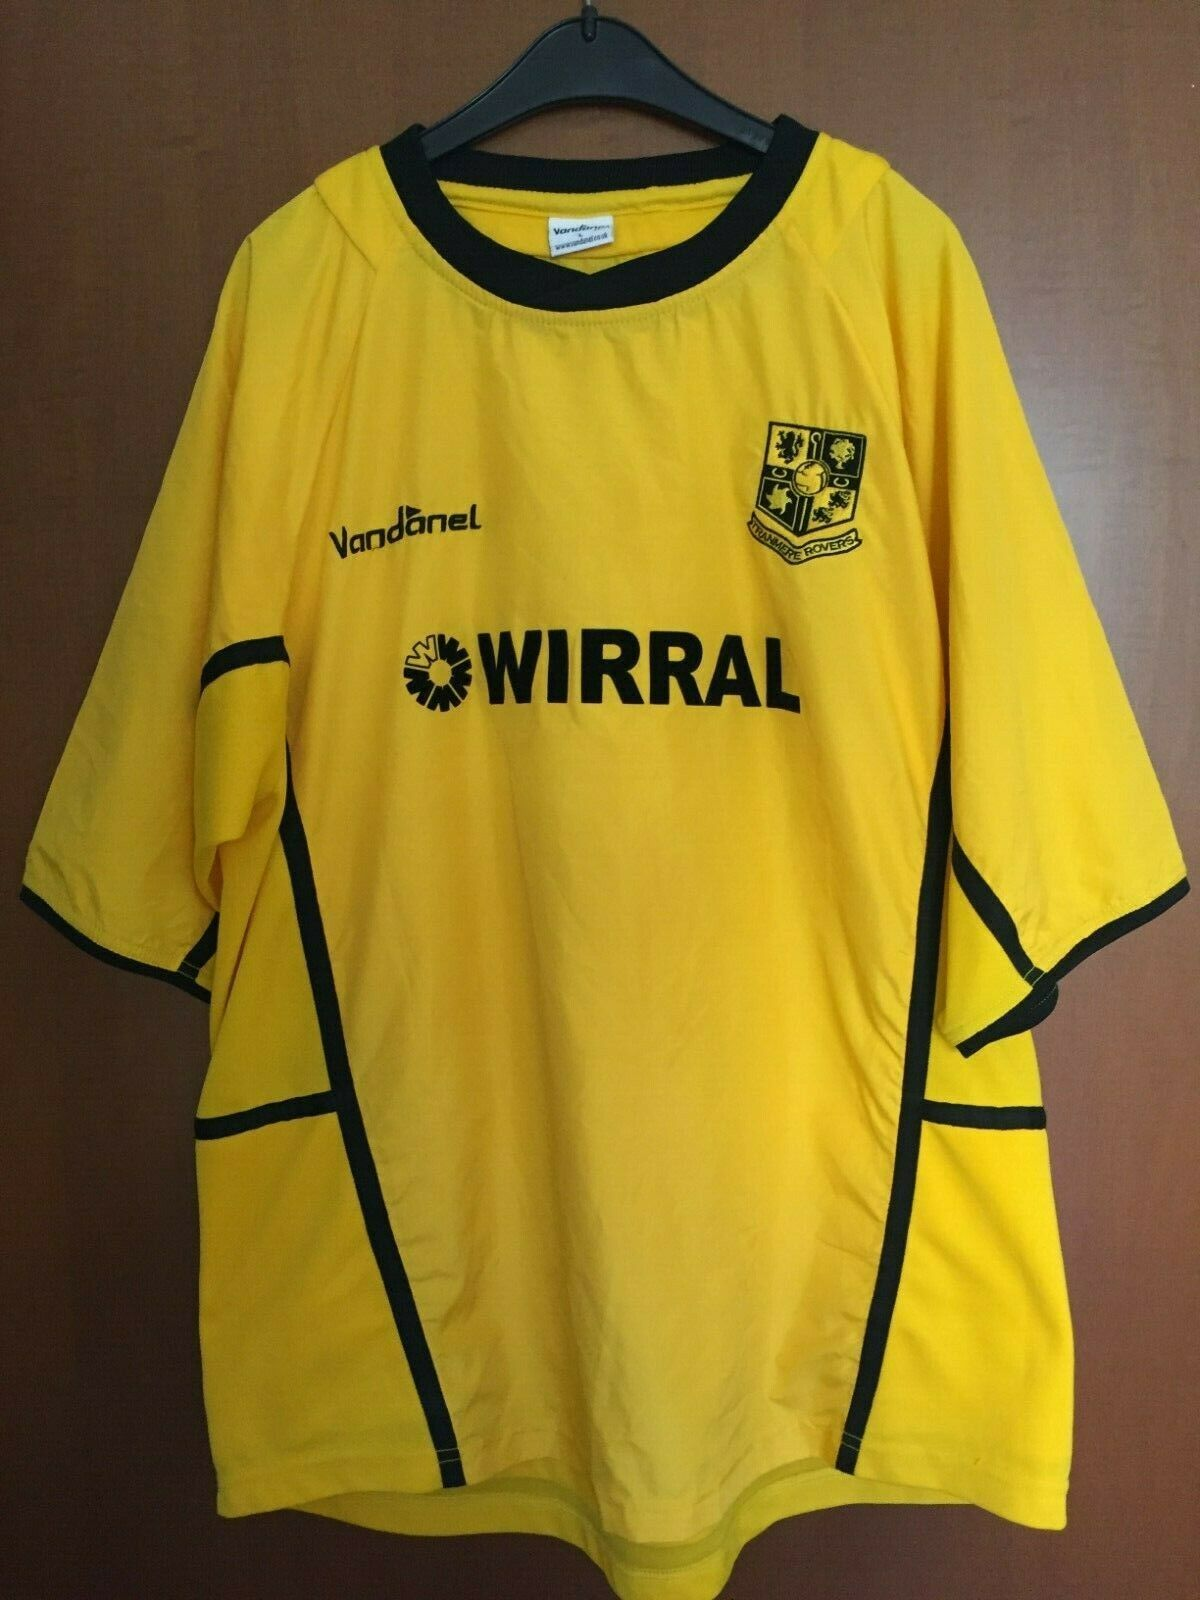 Maglia Shirt Maillot Trikot Jersey Tranmere Rovers Wirral Vandanel England